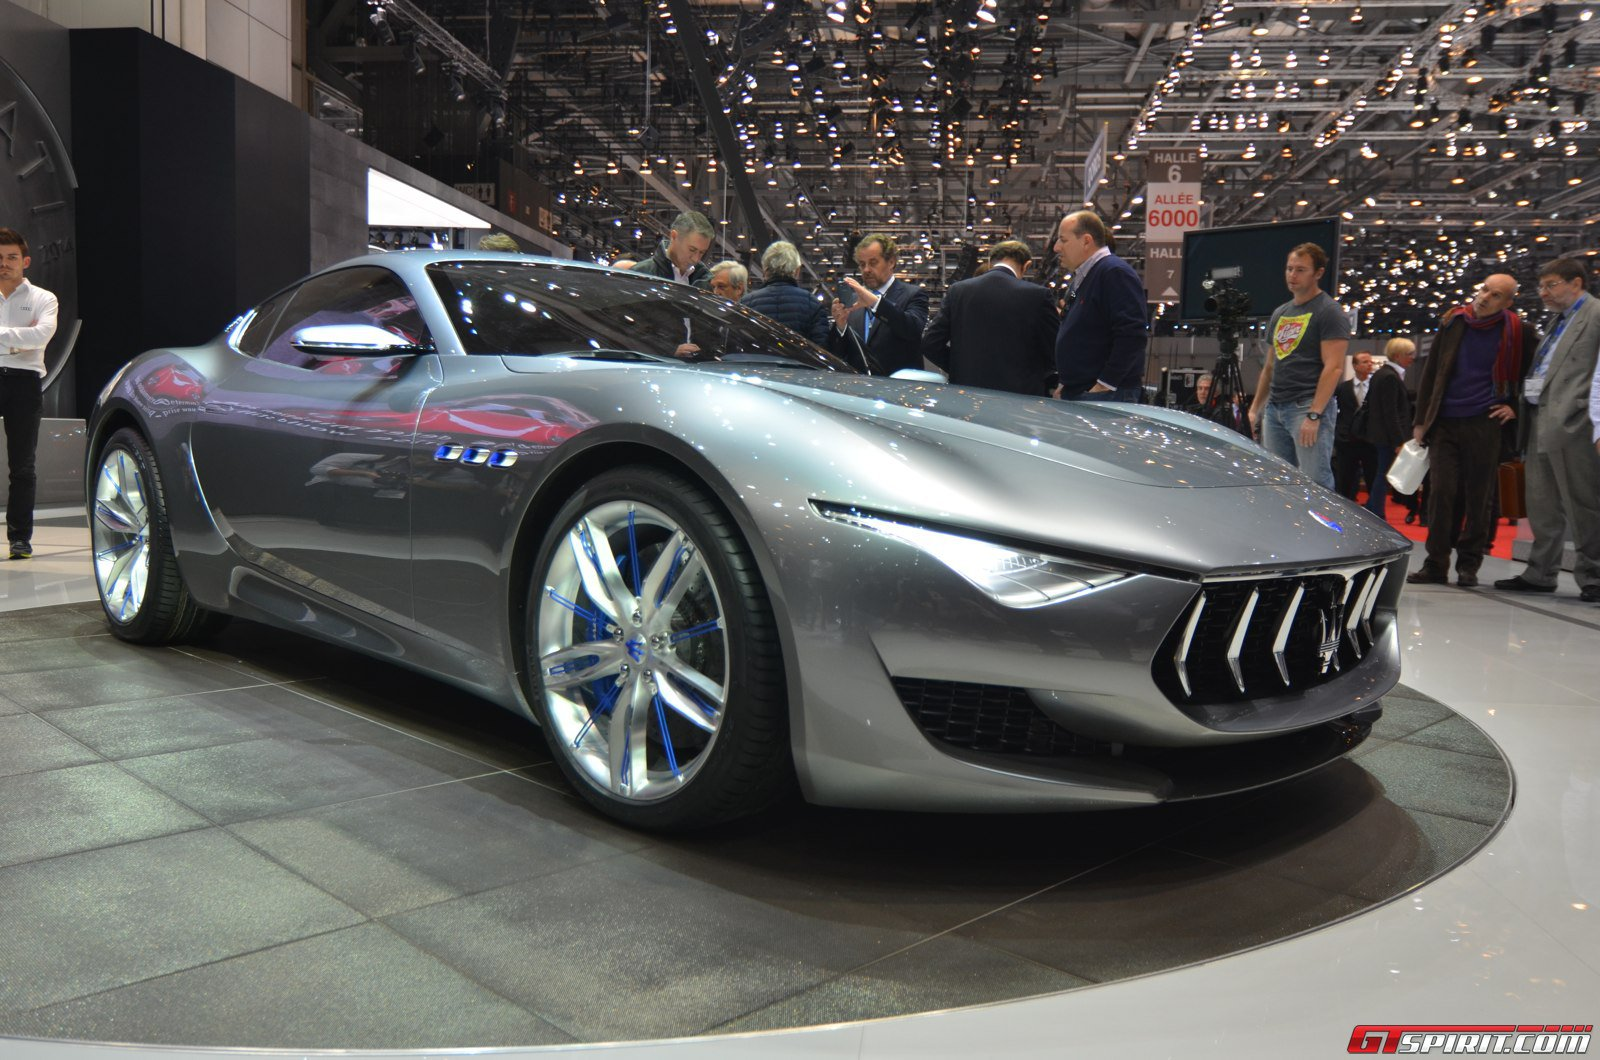 Full Electric Maserati Alfieri Confirmed for 2020